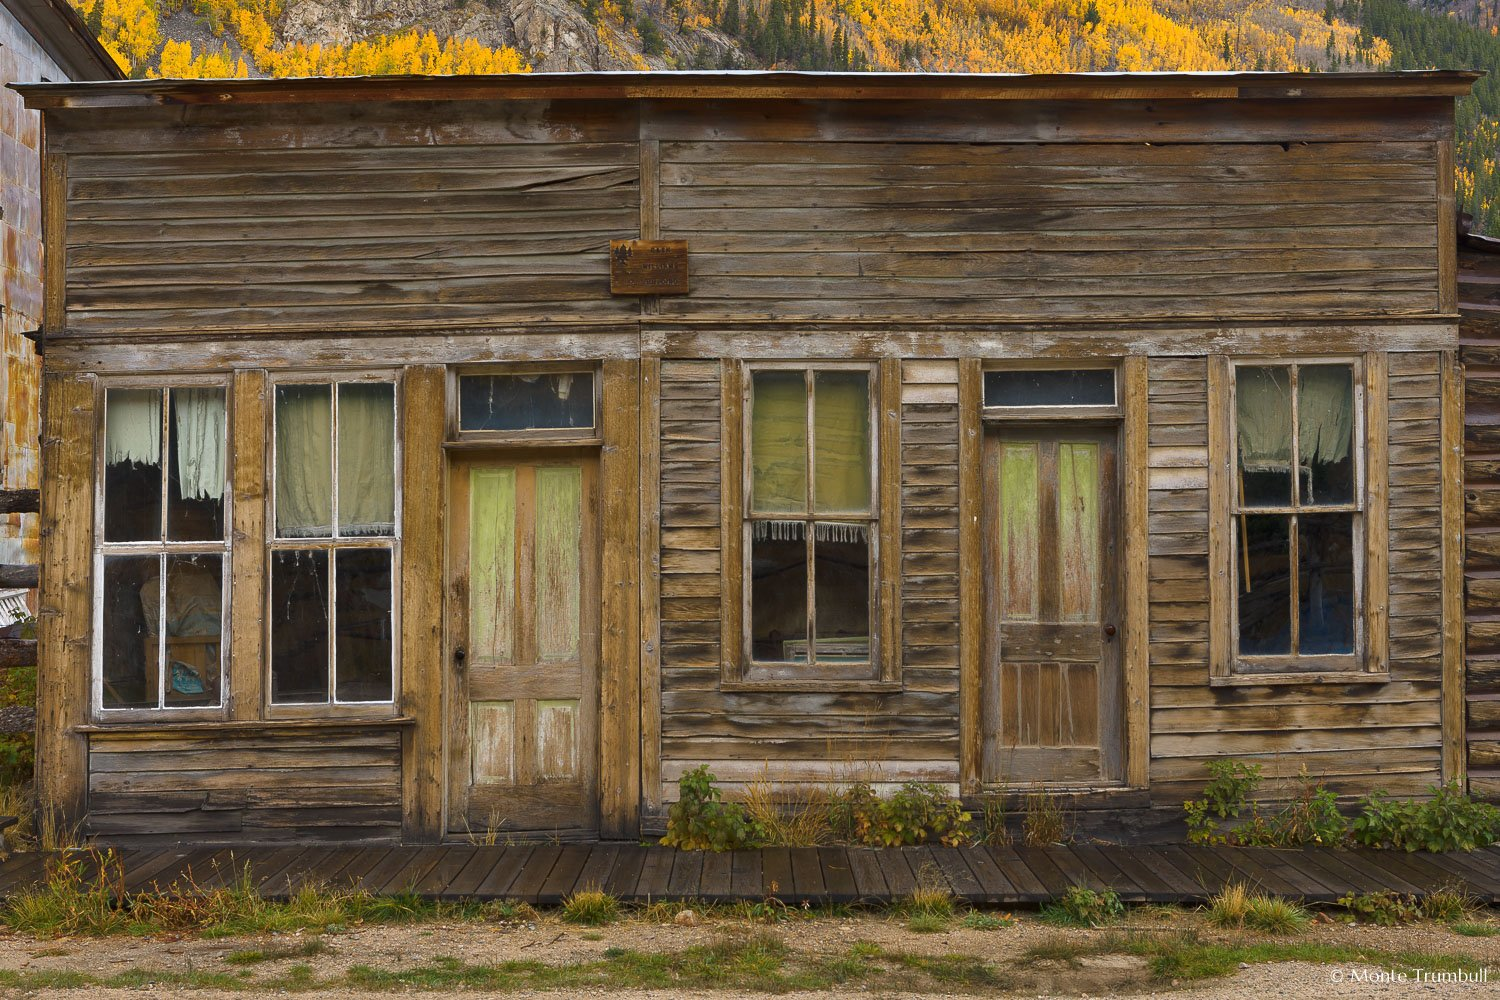 MT-20111004-090657-0035-Colorado-St-Elmo-ghost-town-old-building-fall.jpg